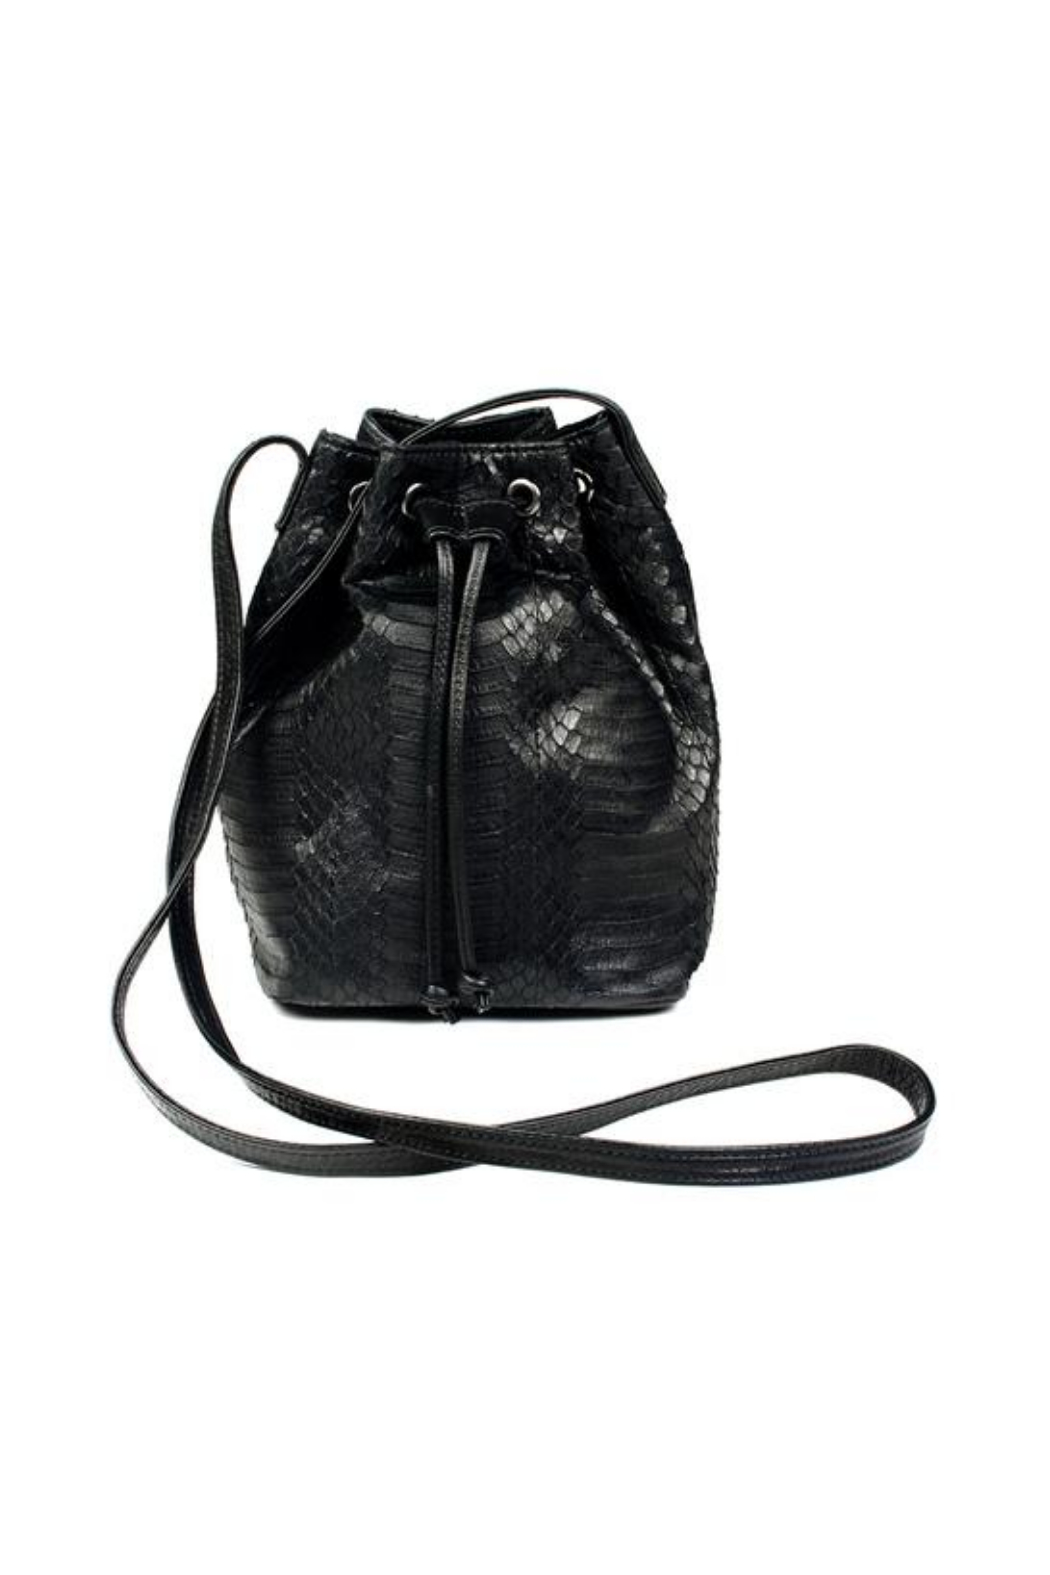 Deux Cuirs (C&C Creative) Snakeskin Bucket Bag - Front Cropped Image